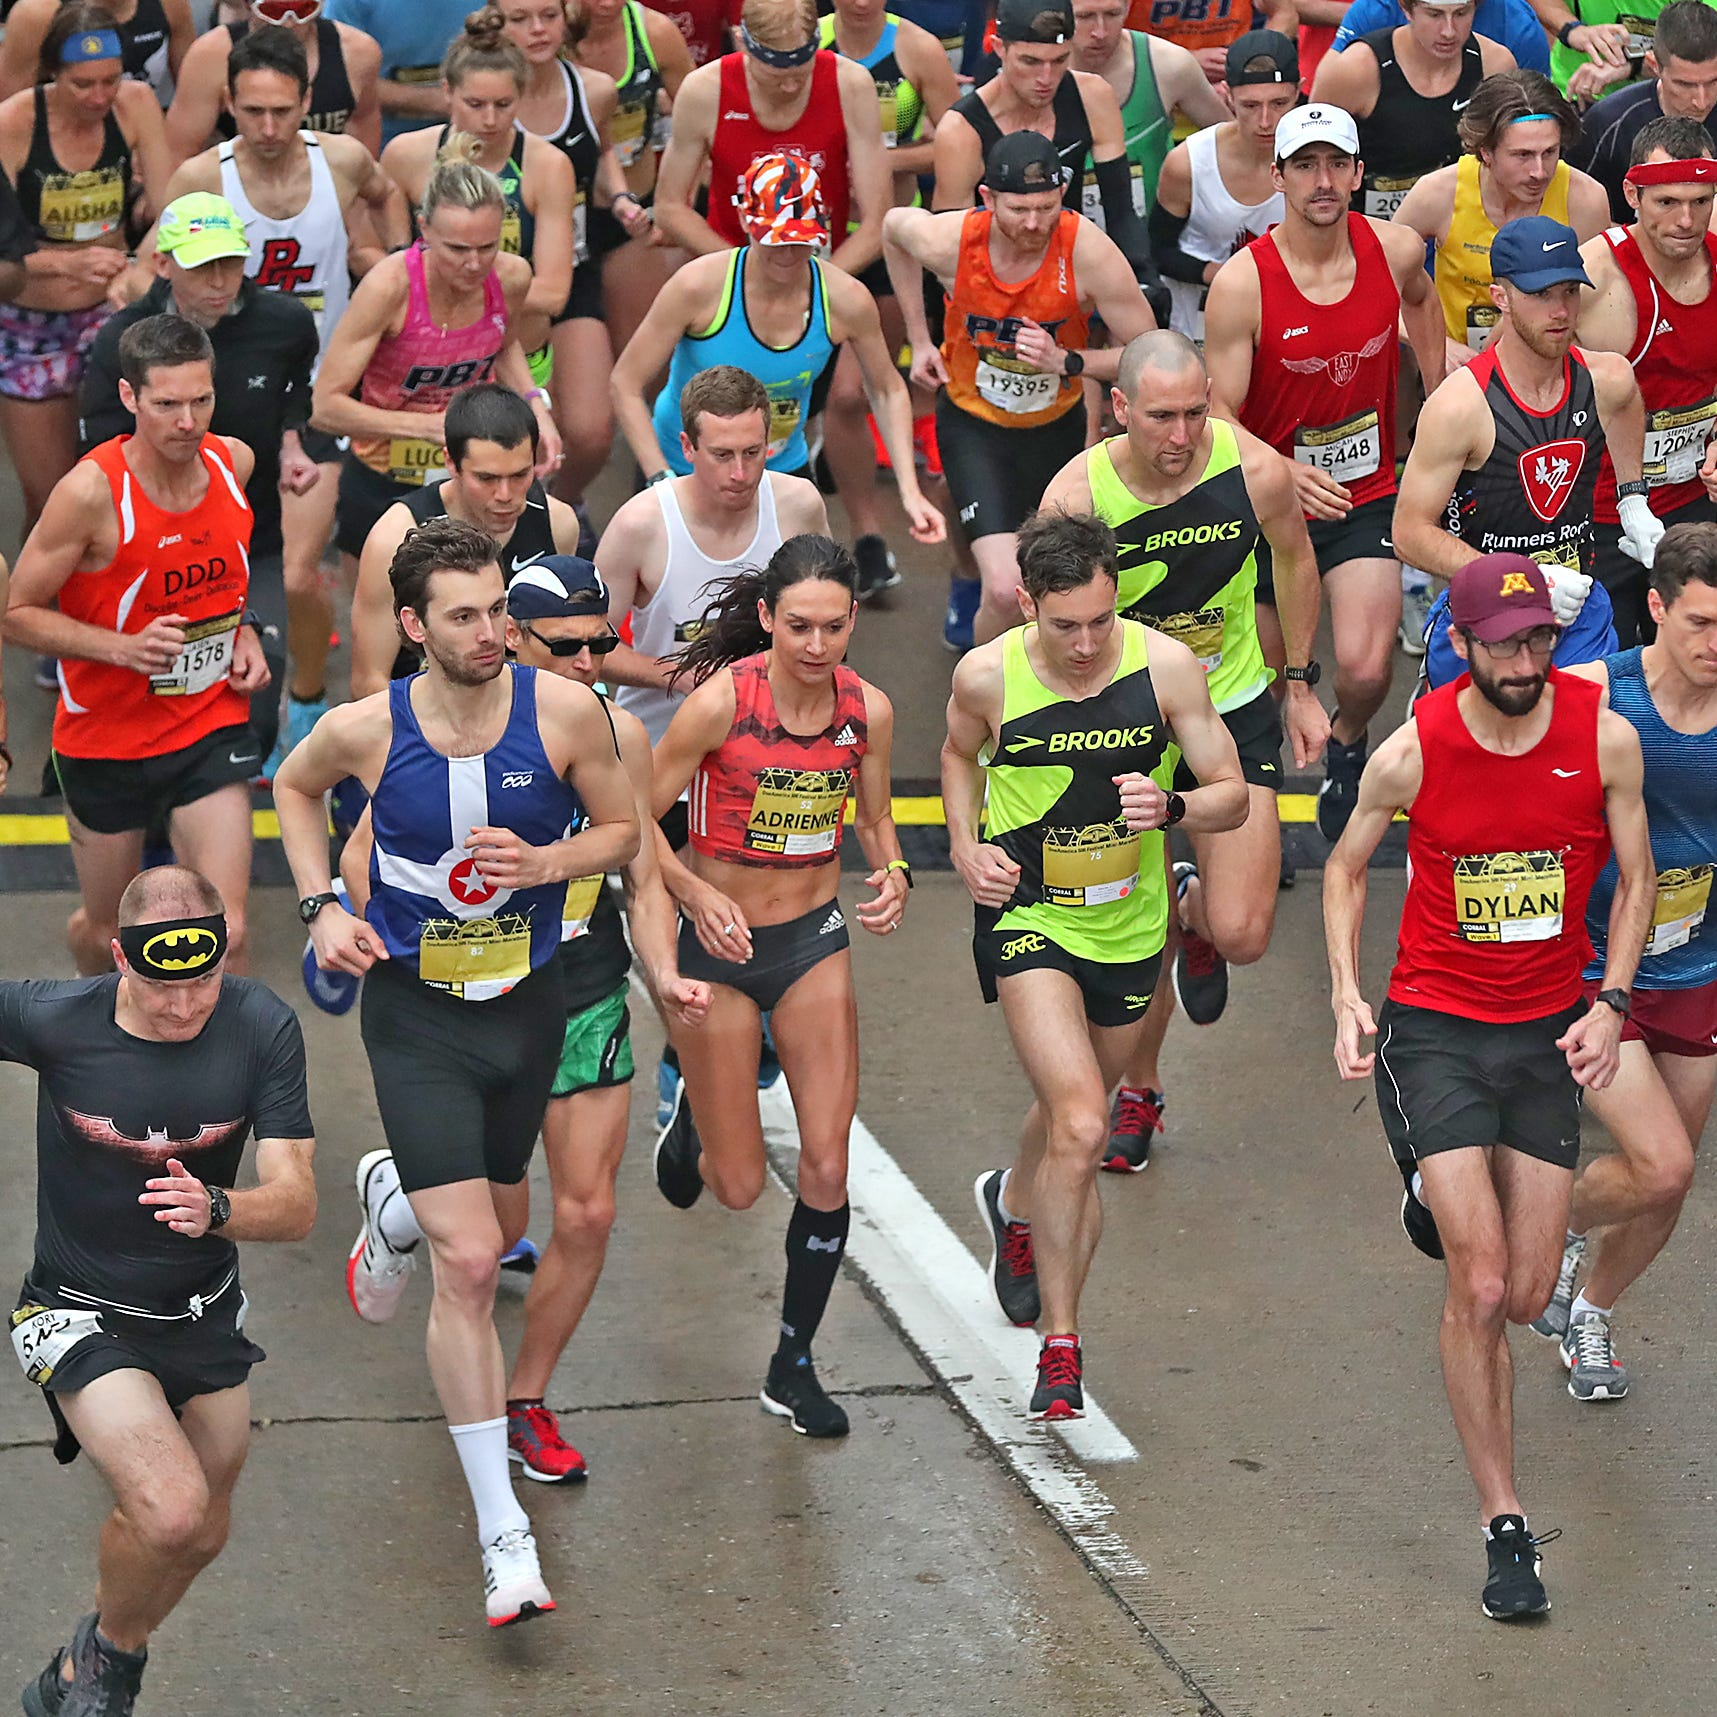 Check out the results from the 500 Festival One America Mini Marathon